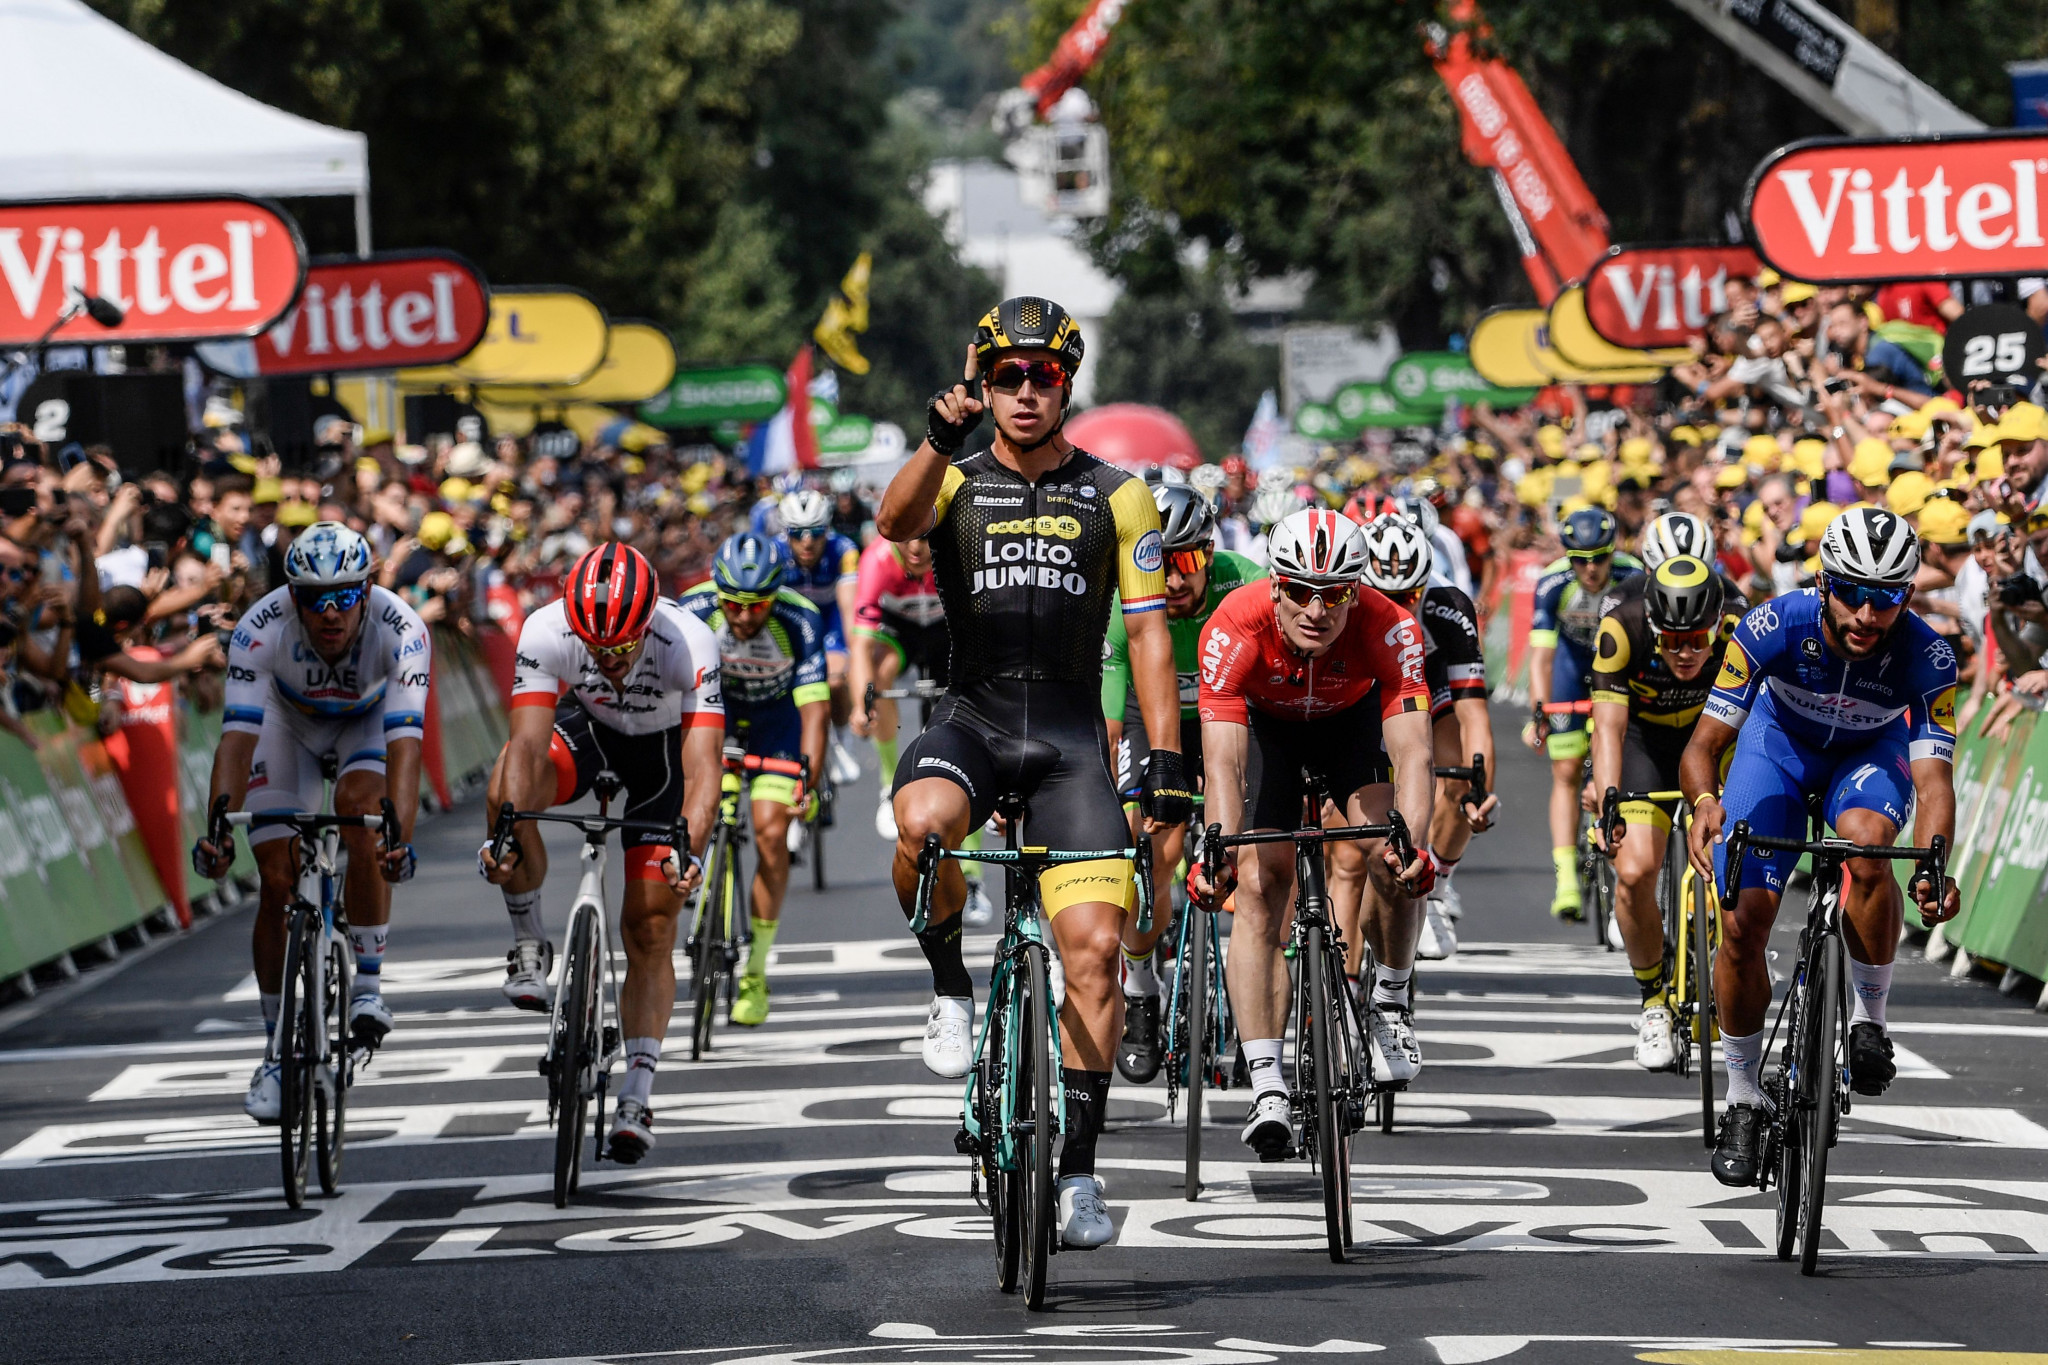 Groenewegen wins second straight sprint stage at Tour de France